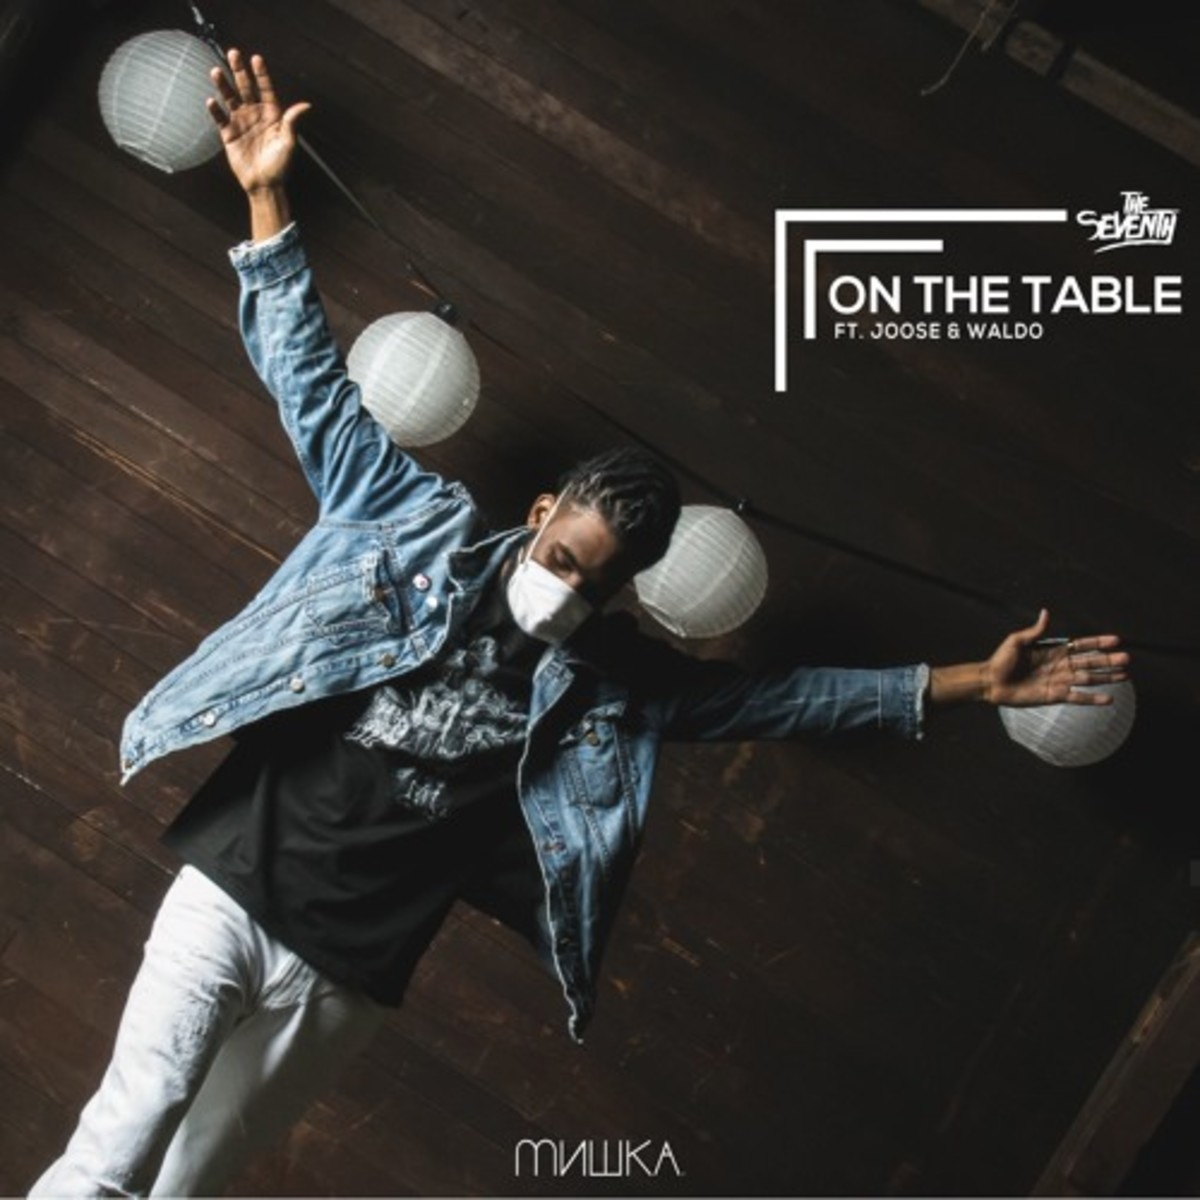 the-seventh-on-the-table.jpg